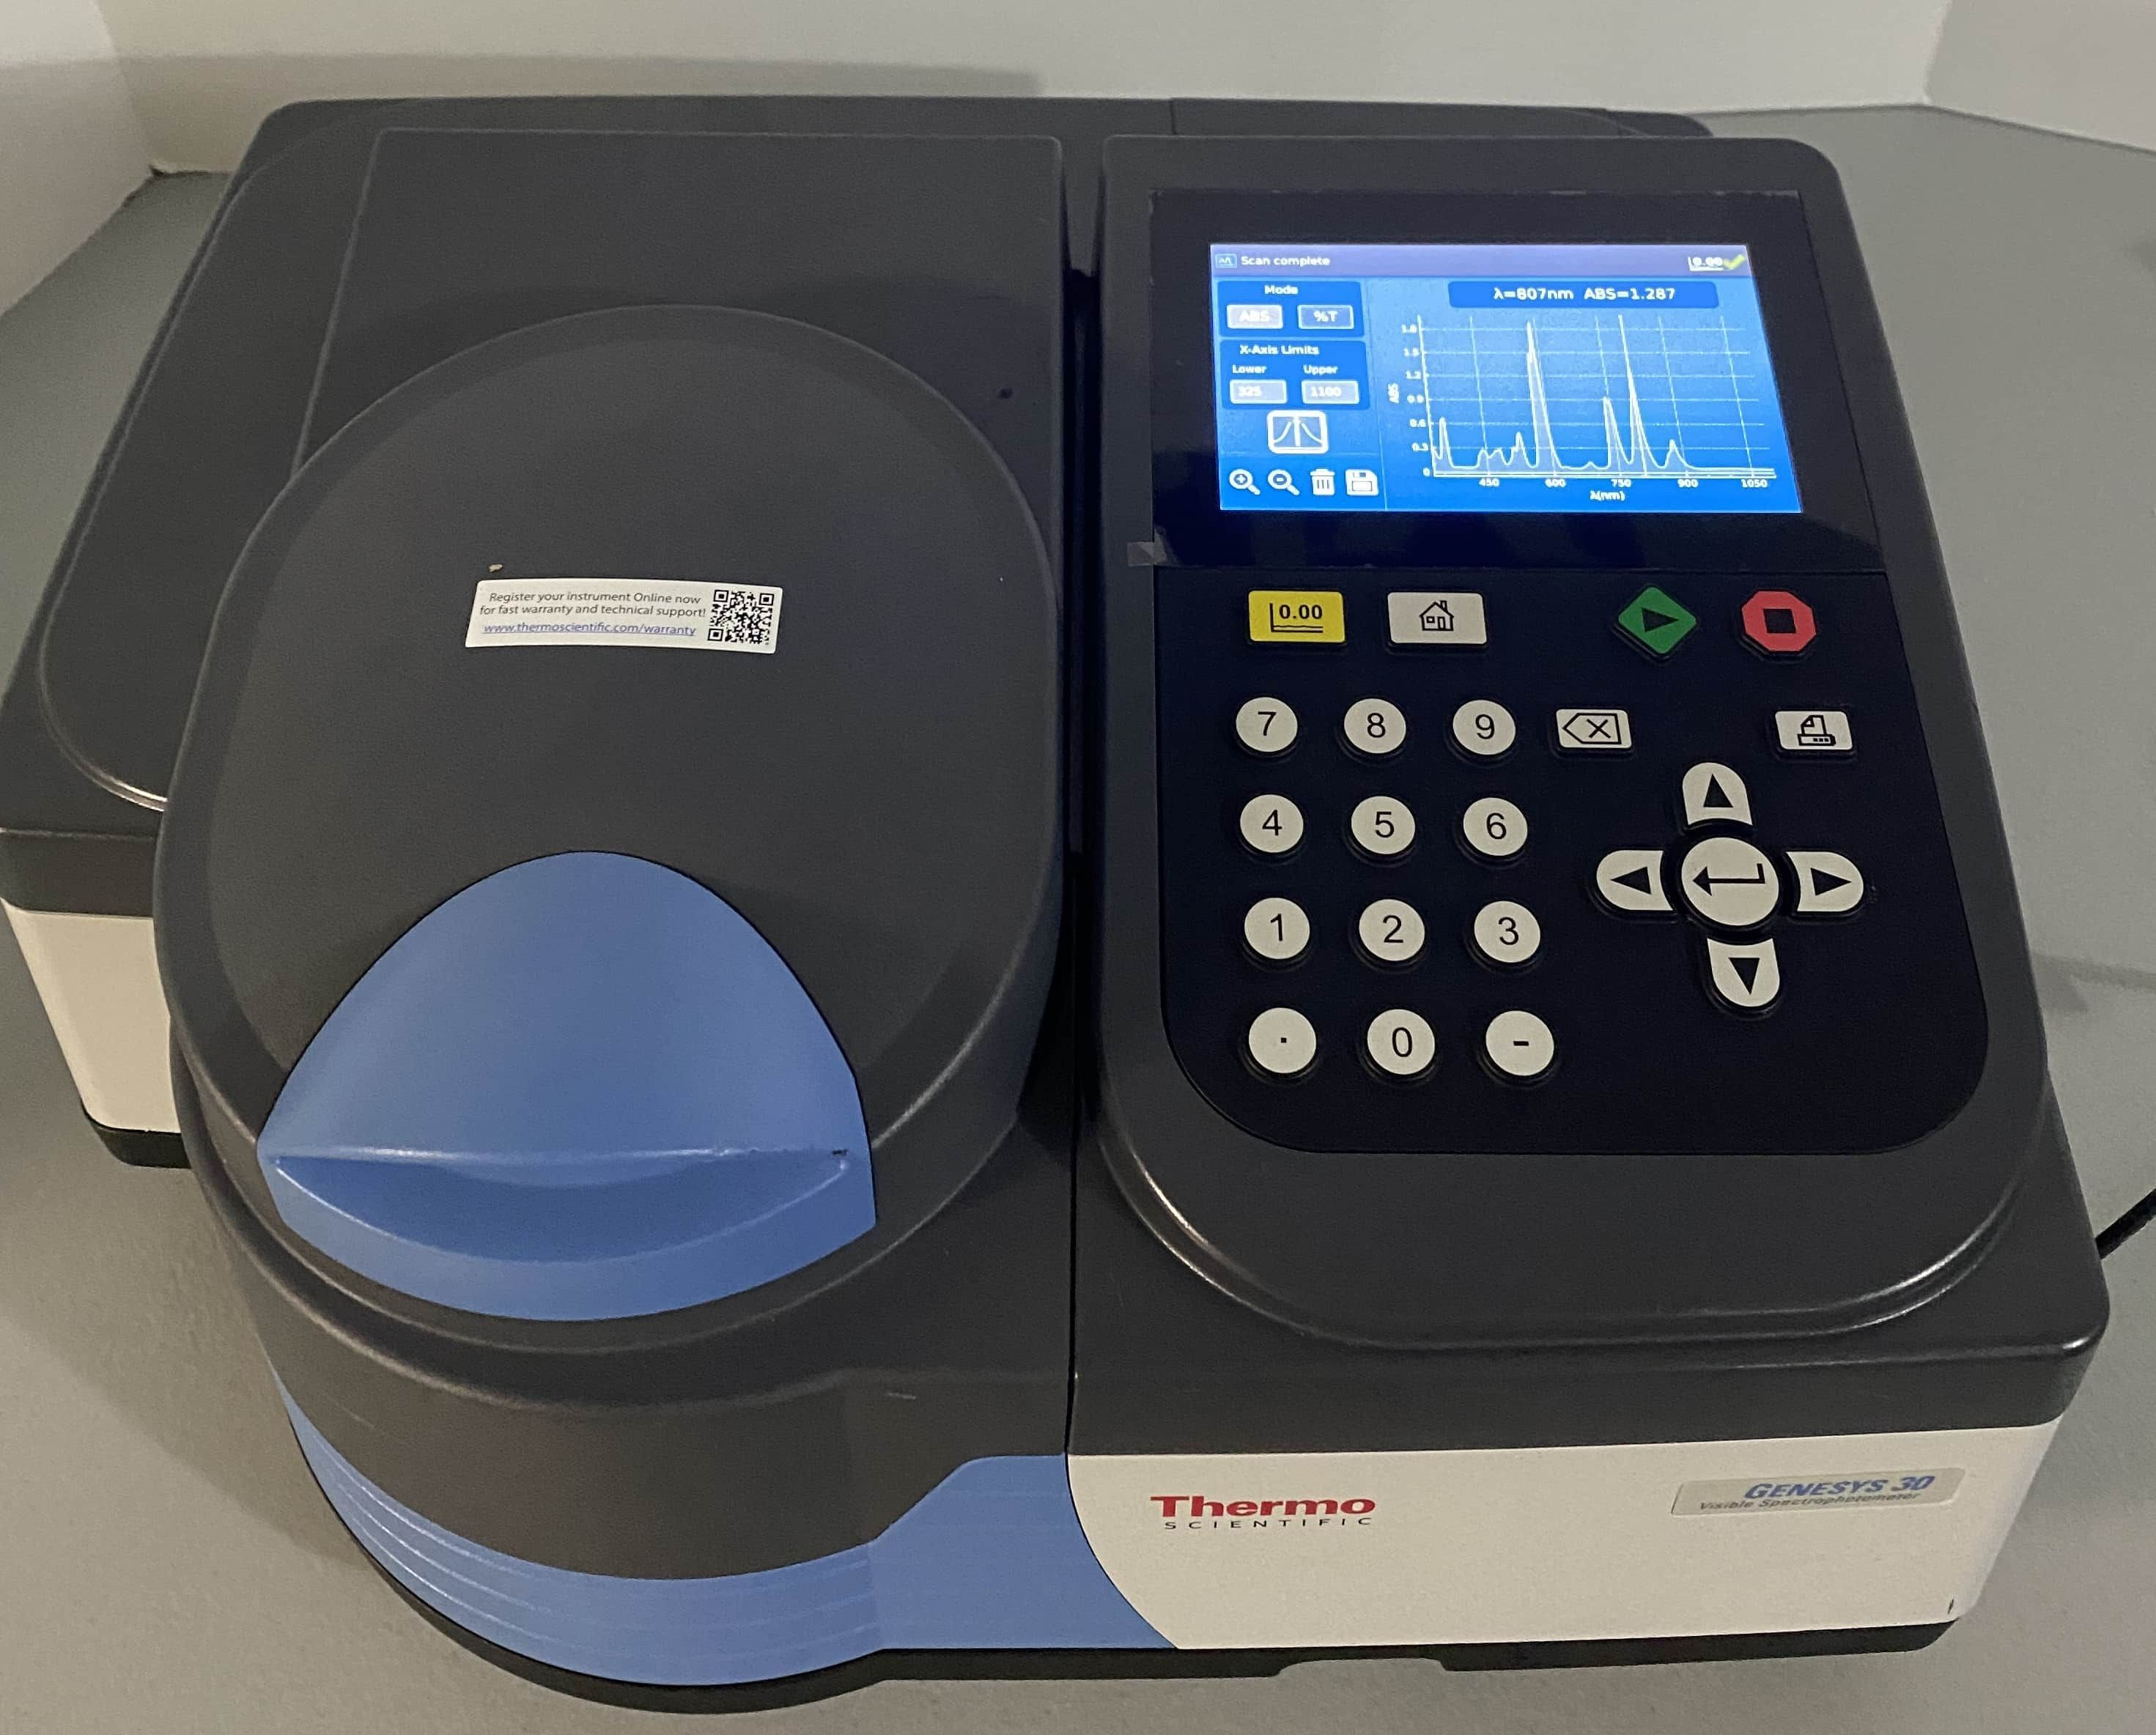 Thermo Genesys 30 VIS Spectrophotometer